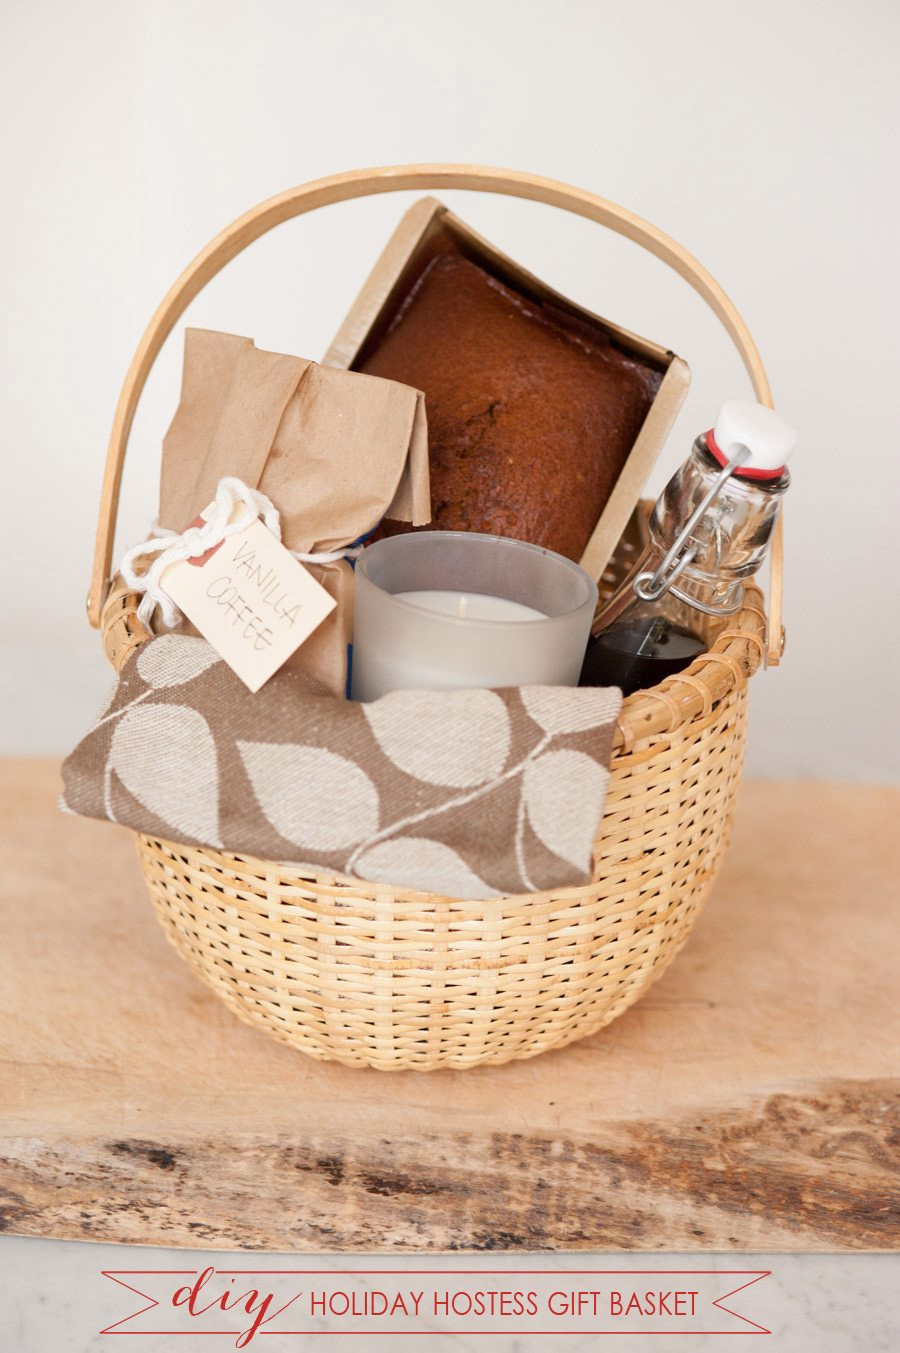 Best ideas about Holiday Gift Basket Ideas . Save or Pin DIY Holiday Hostess Gift Basket The Sweetest Occasion Now.